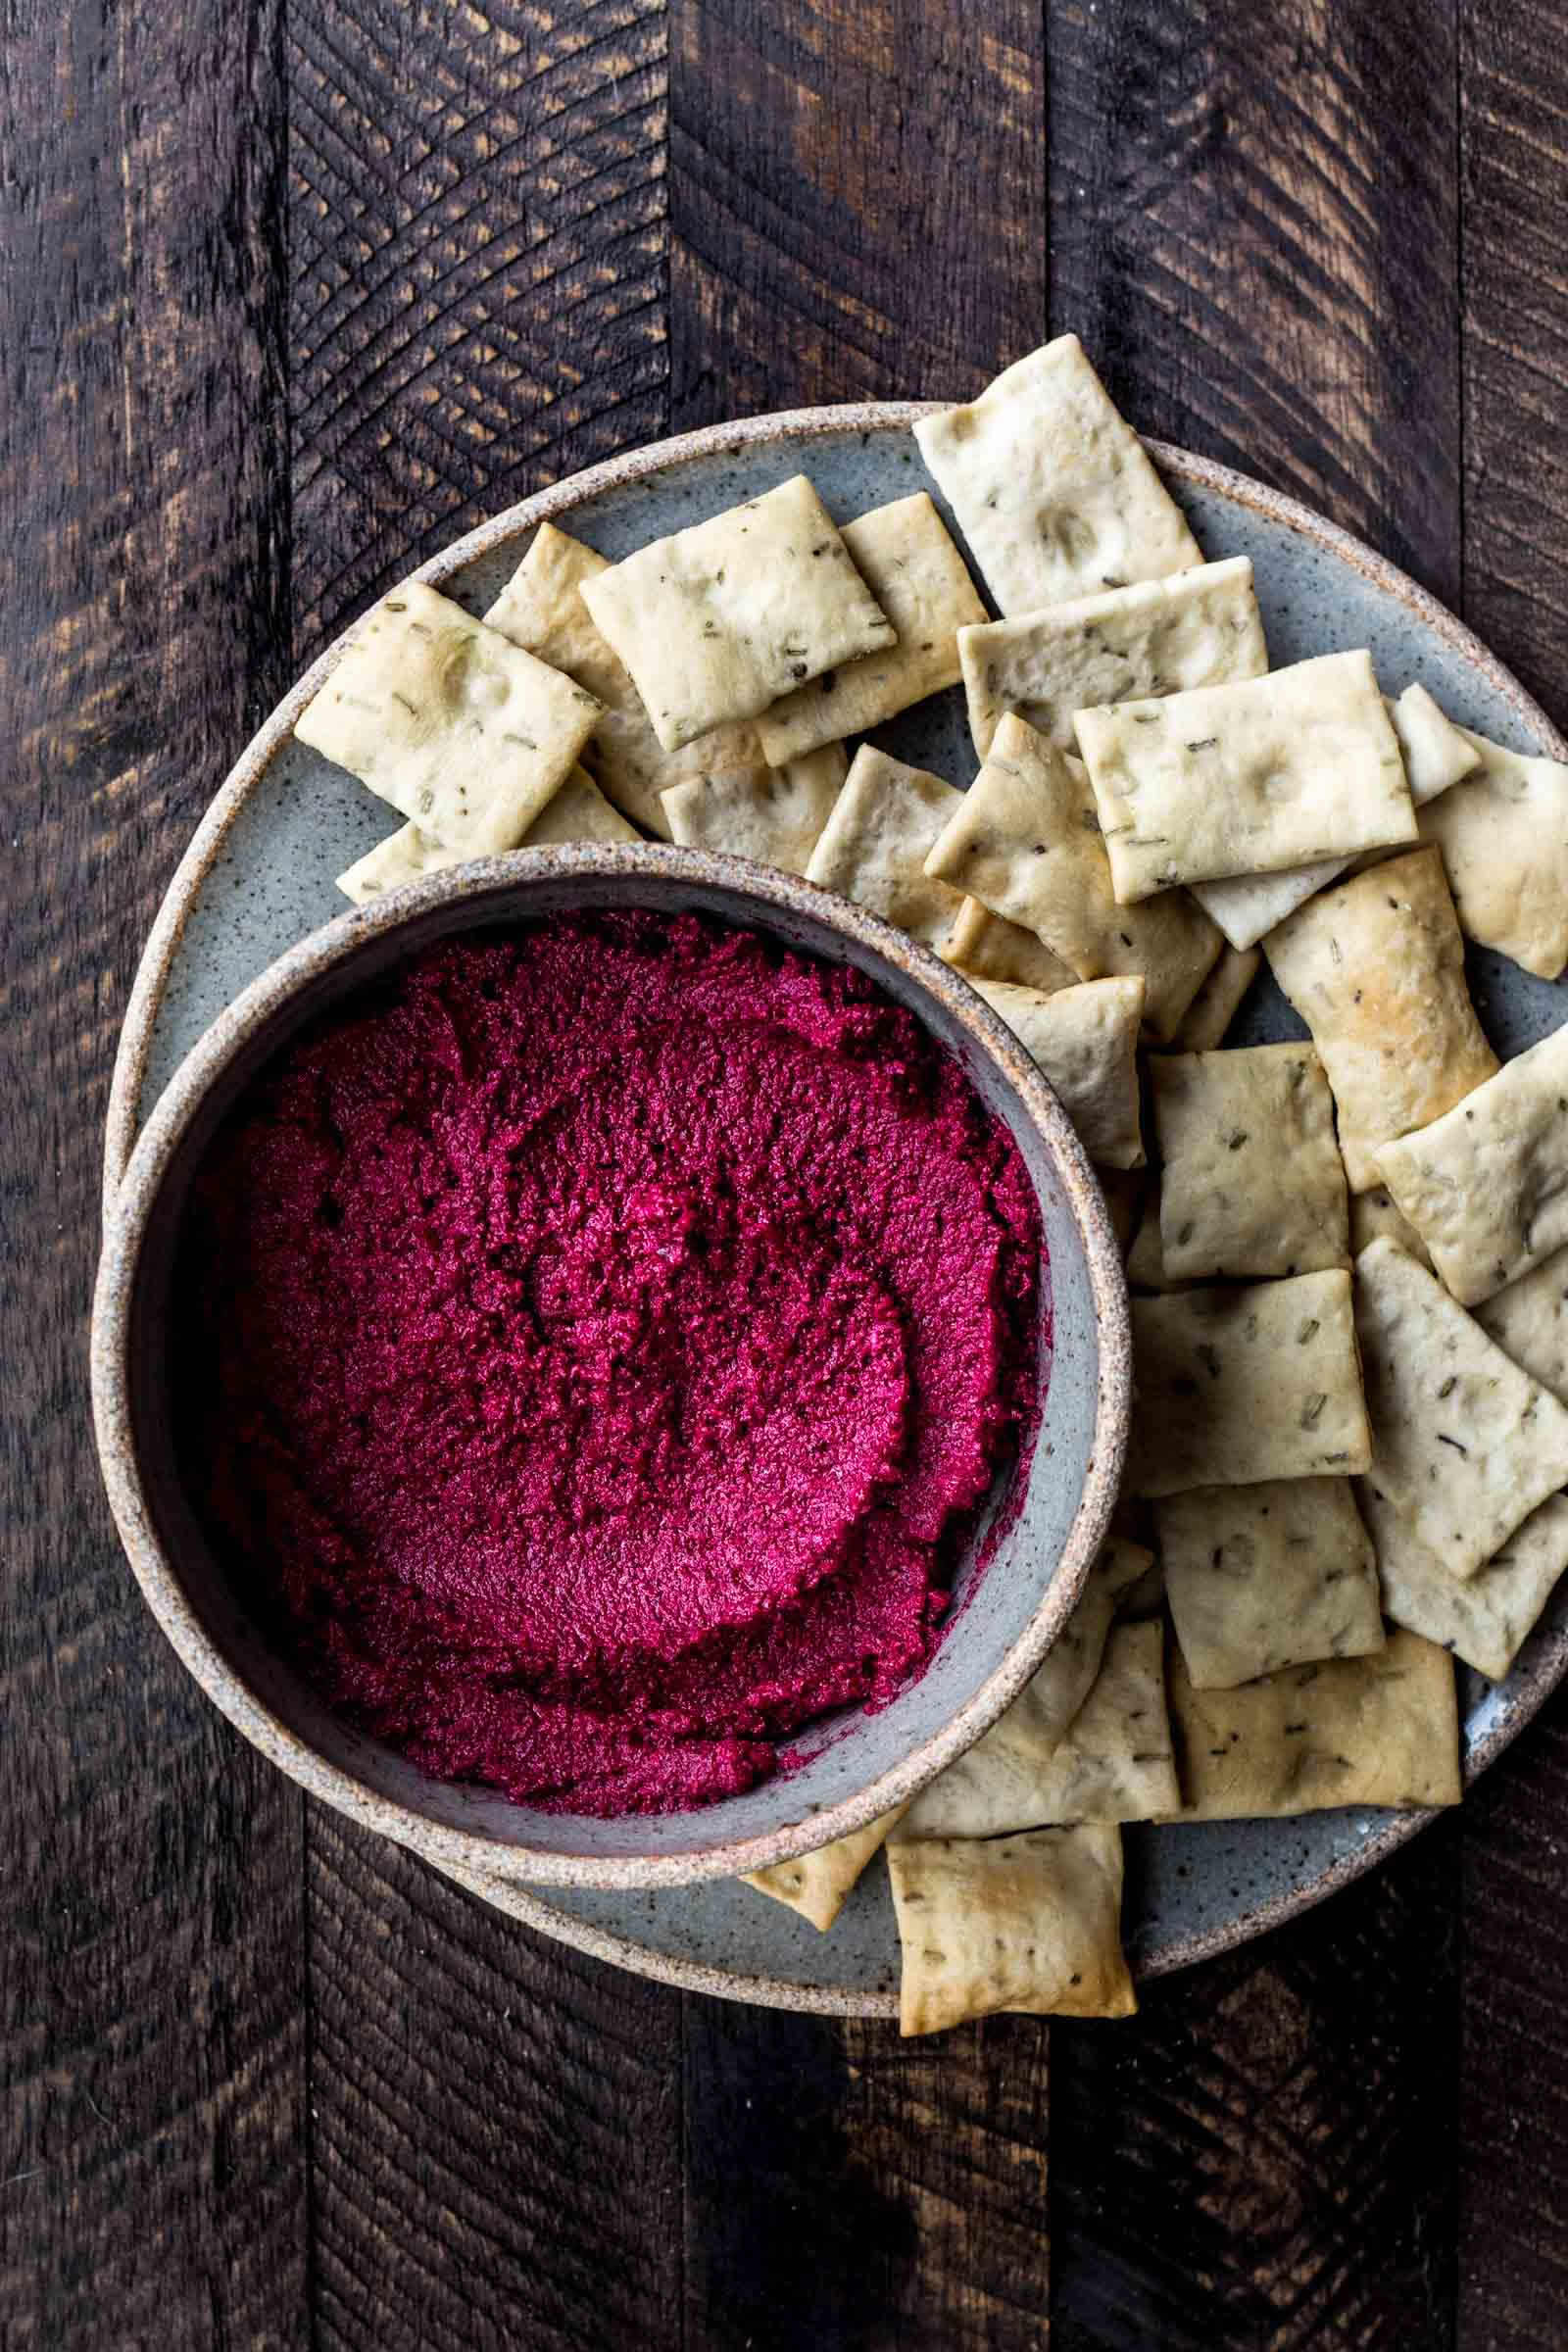 Photo: Beet Butter from Dishing Up the Dirt by Andrea Bemis